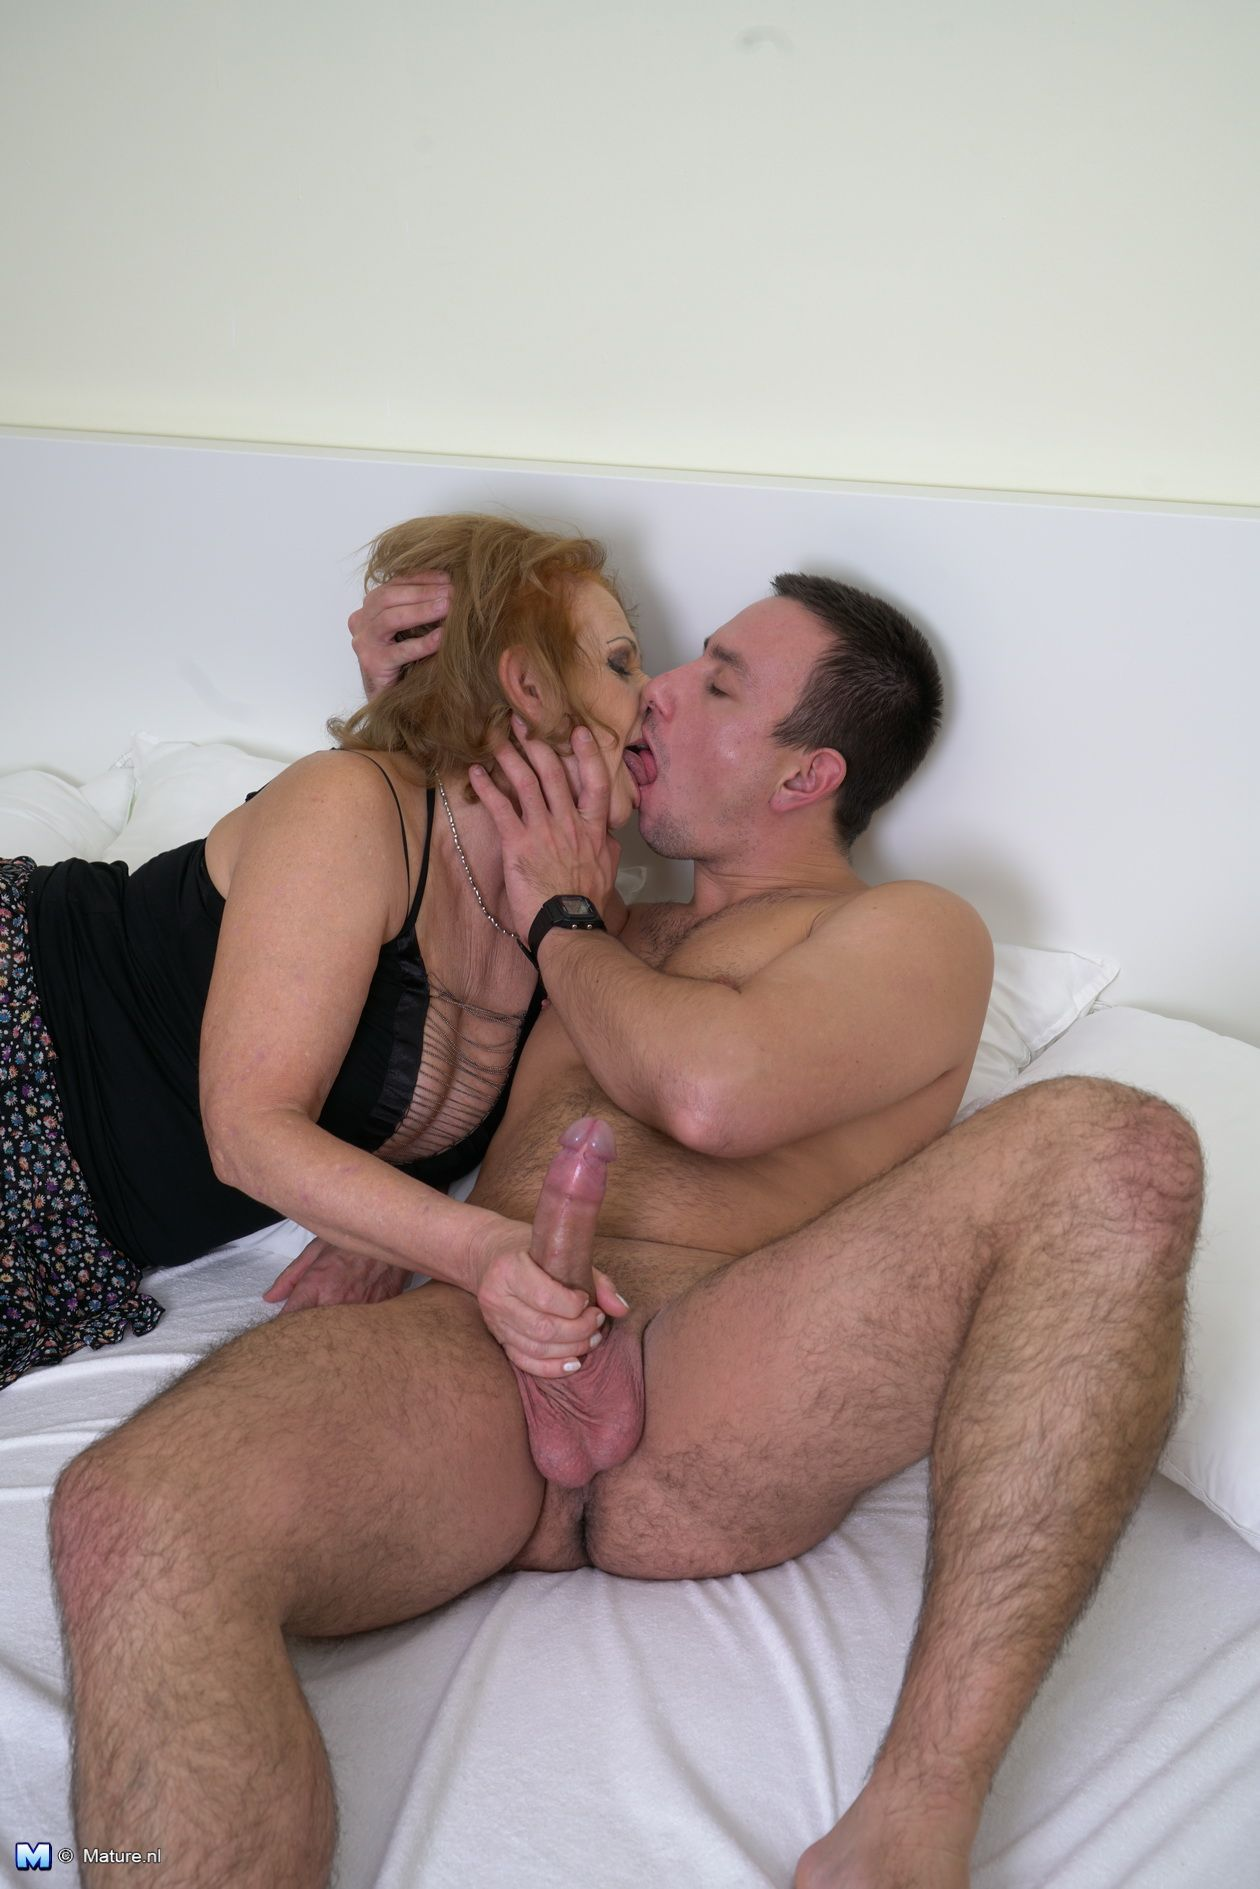 Autumn Raby Fuck naked older mature very hot archive free. comments: 3